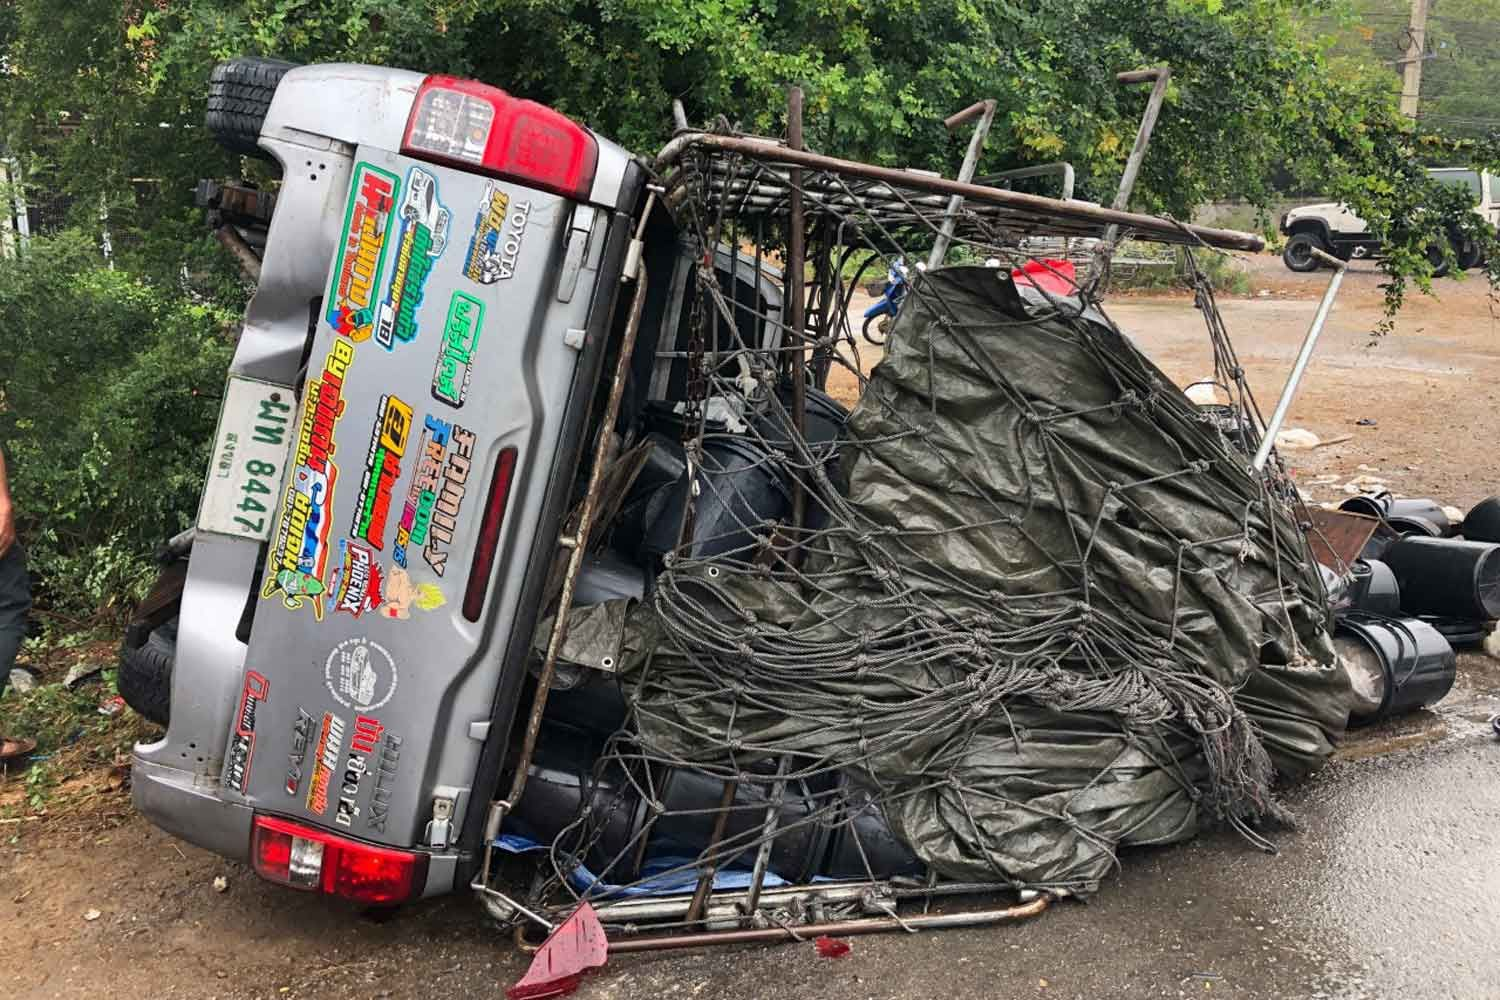 Rescue worker struck and killed at accident scene | News by Thaiger